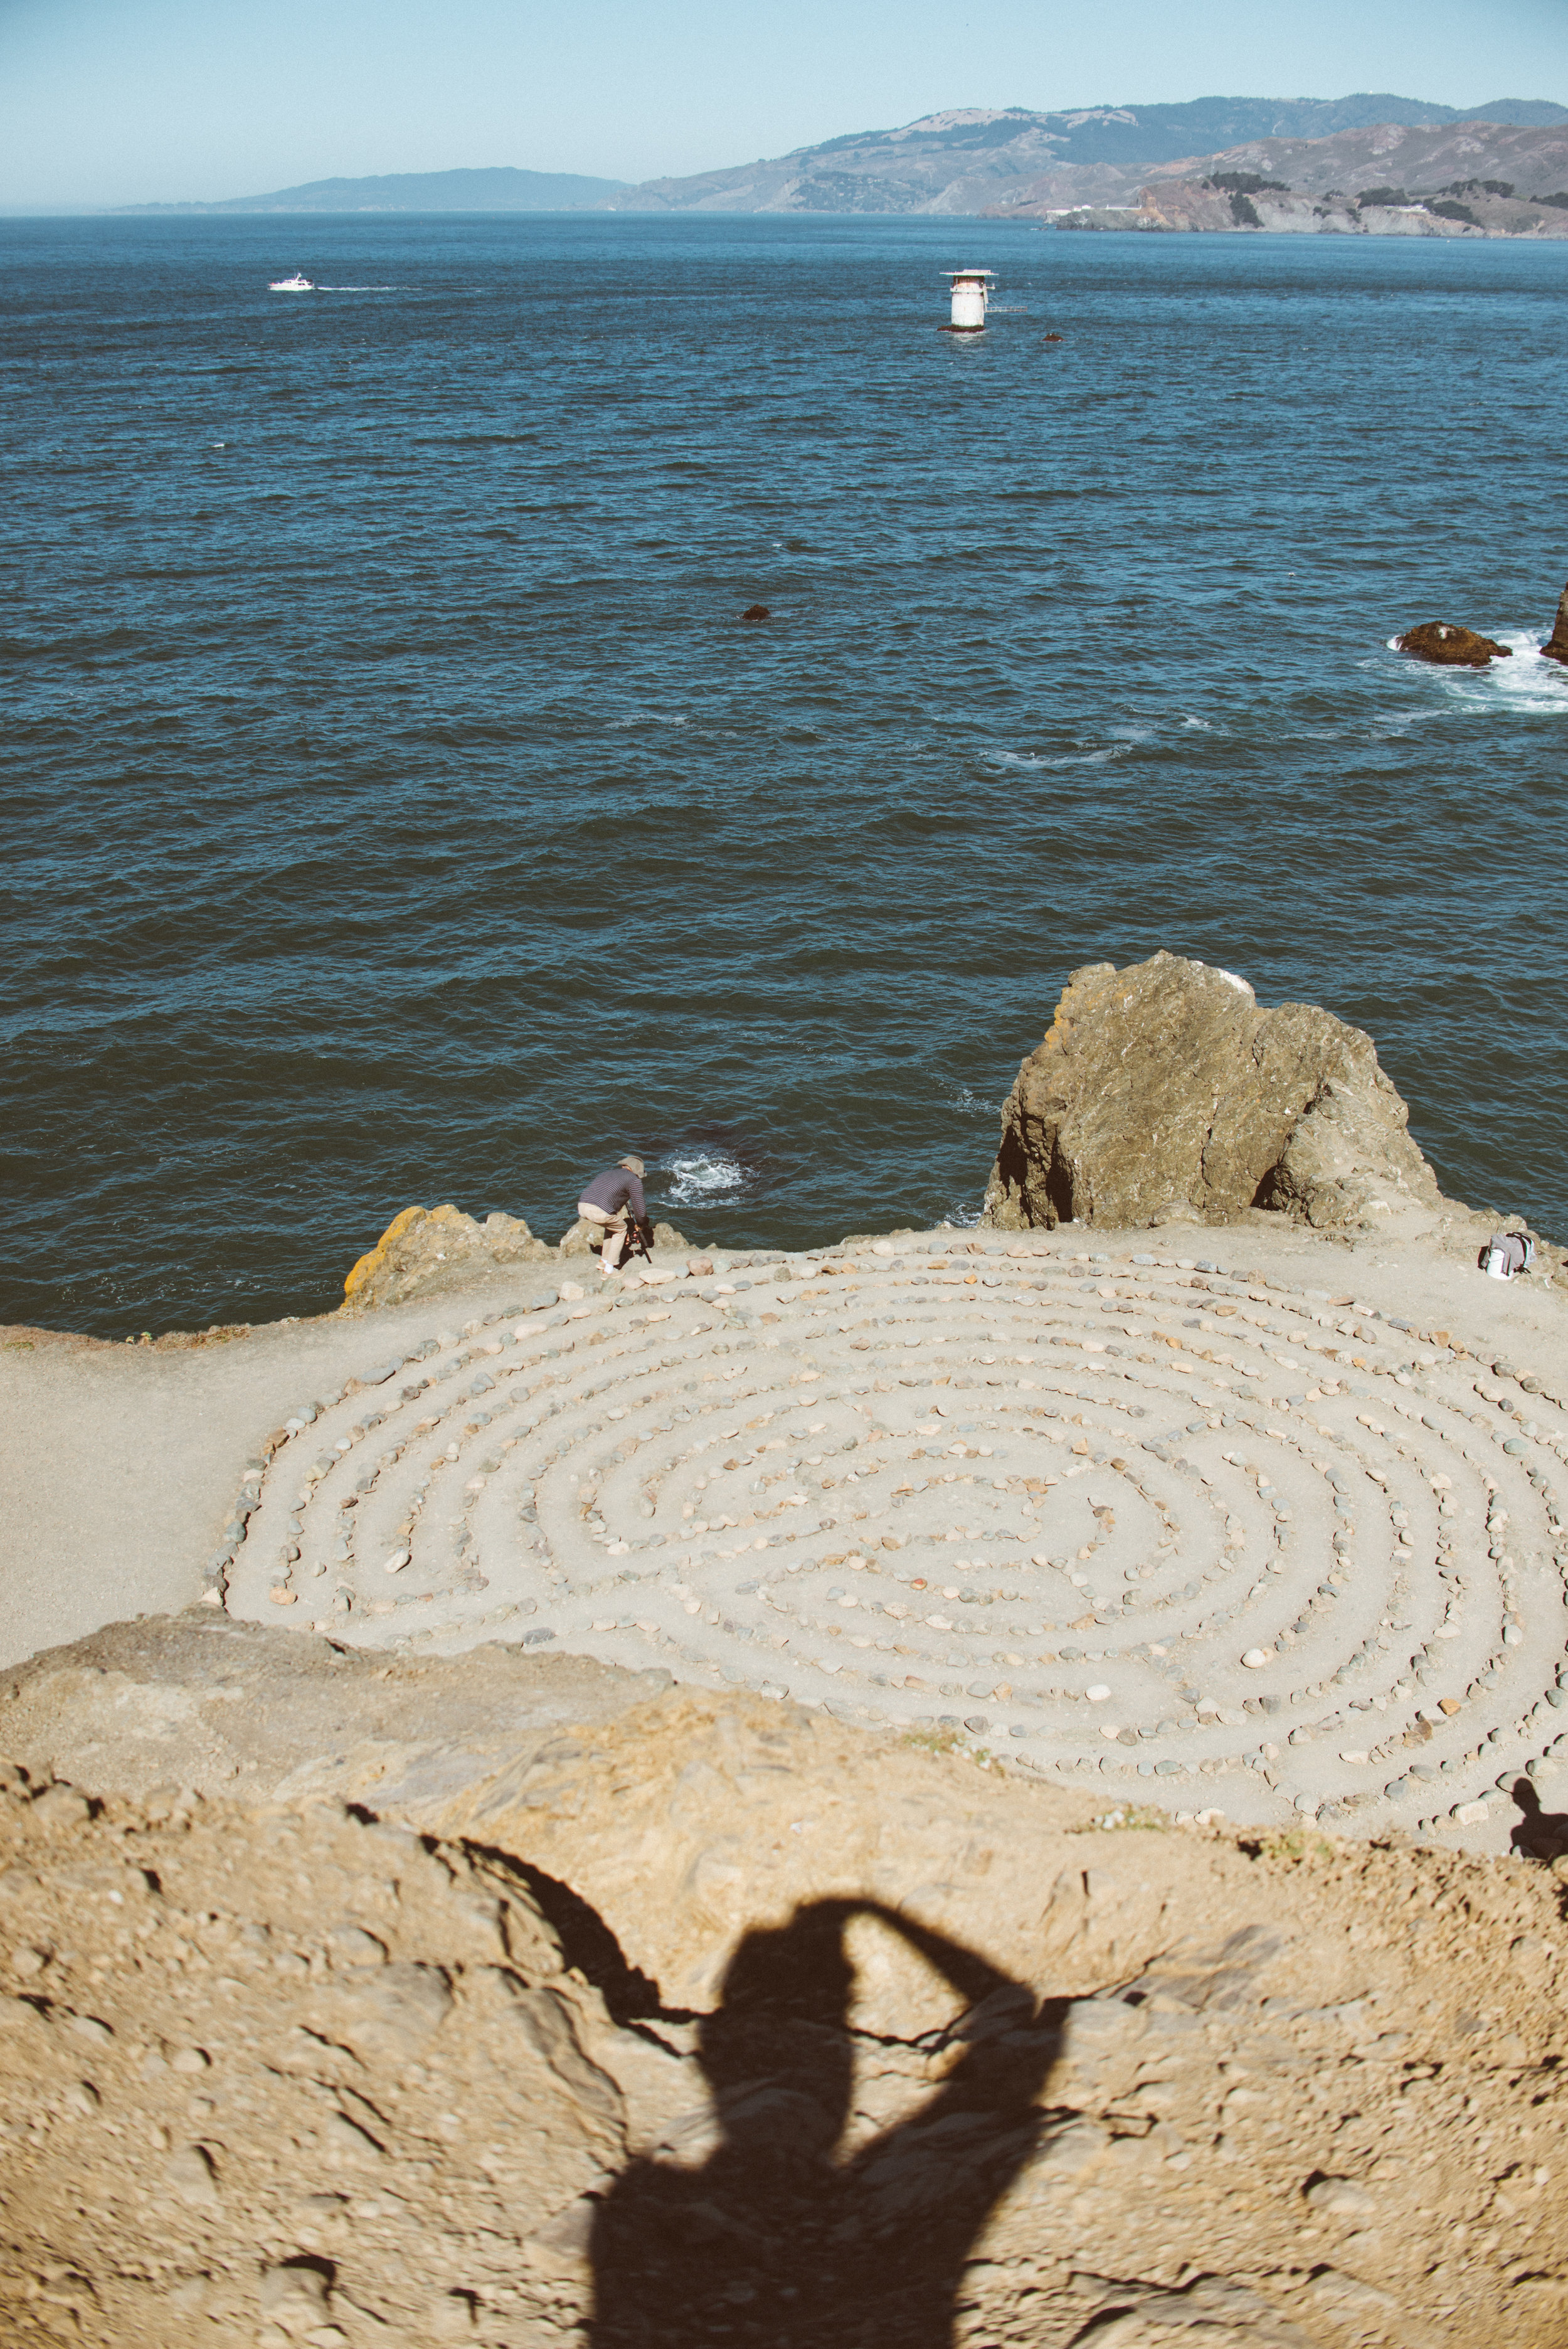 I finally got to see the Lands End Labyrinth